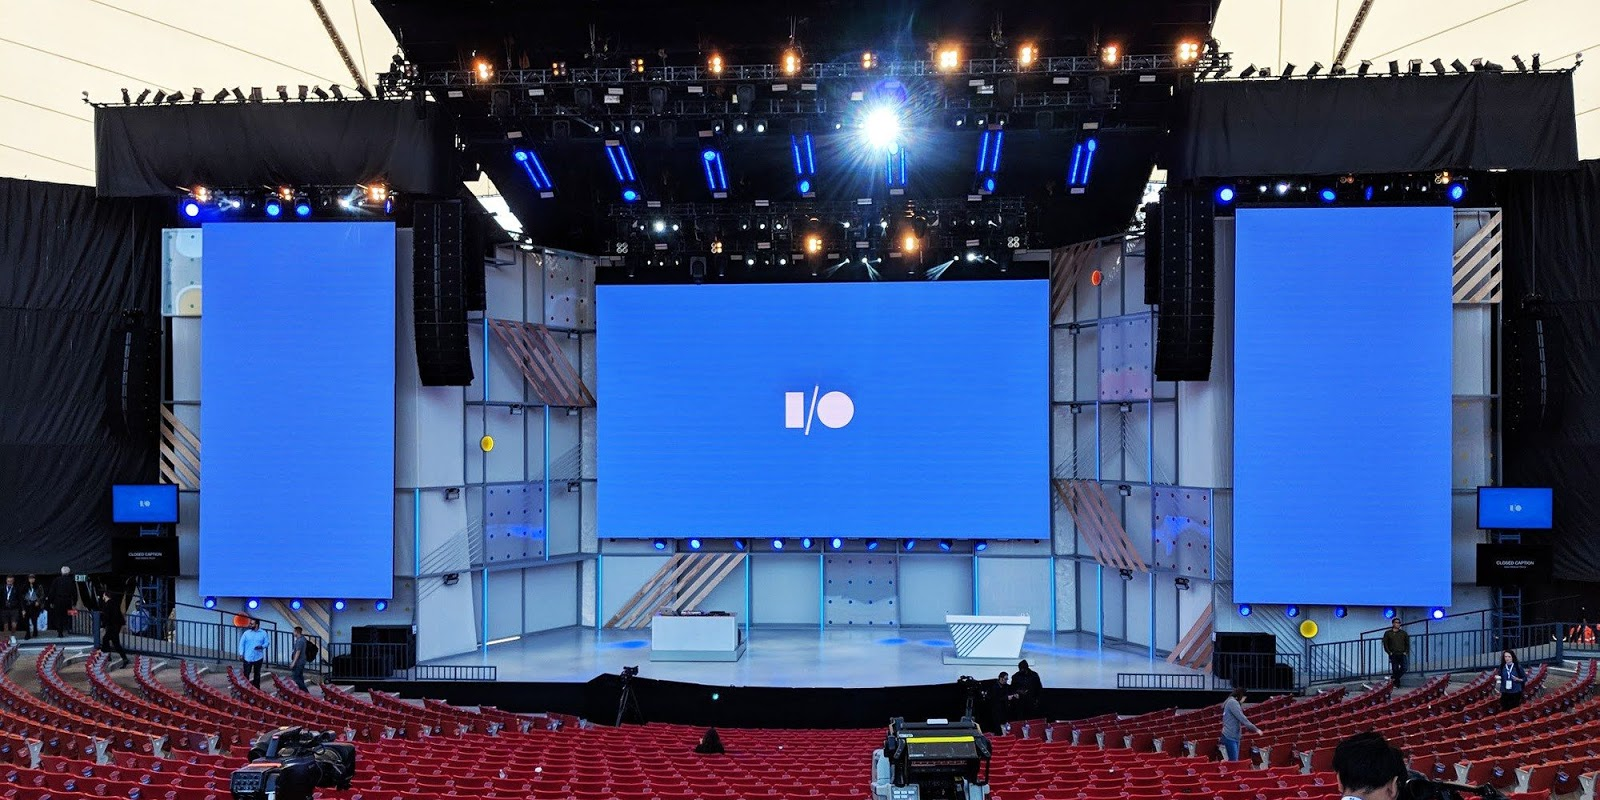 Google I/O 2019 | Live Streaming